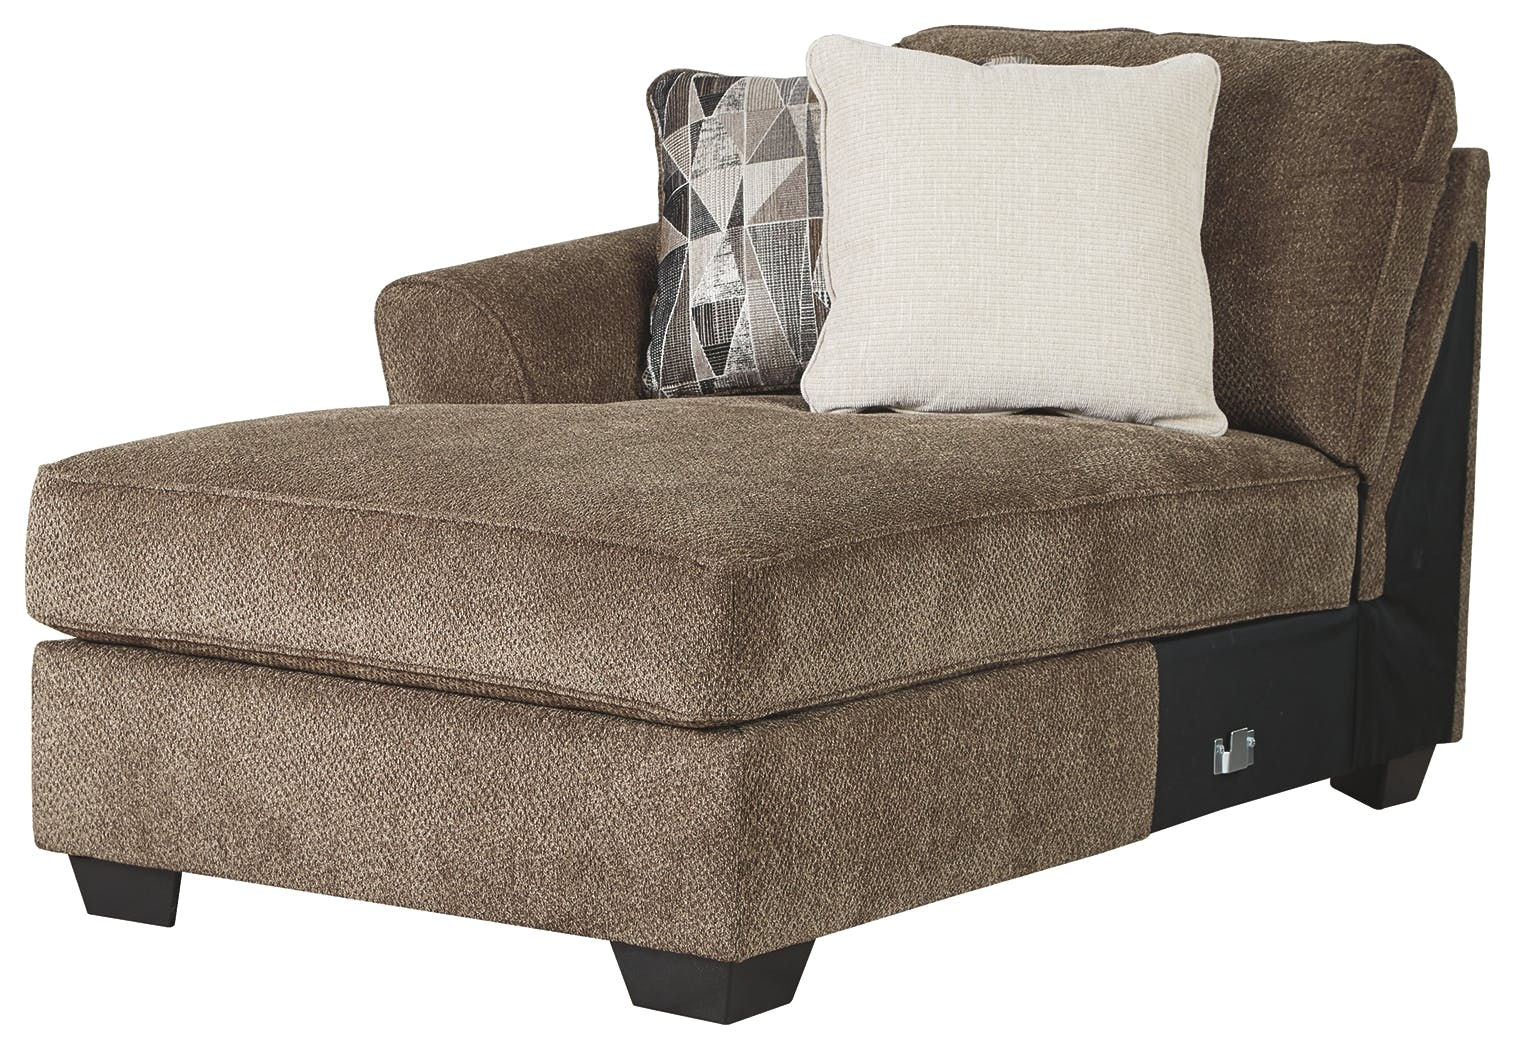 Shop Our Graftin Teak 3 Piece Sectional With Chaise By Benchcraft 91102s1 Joe Tahan S Furniture